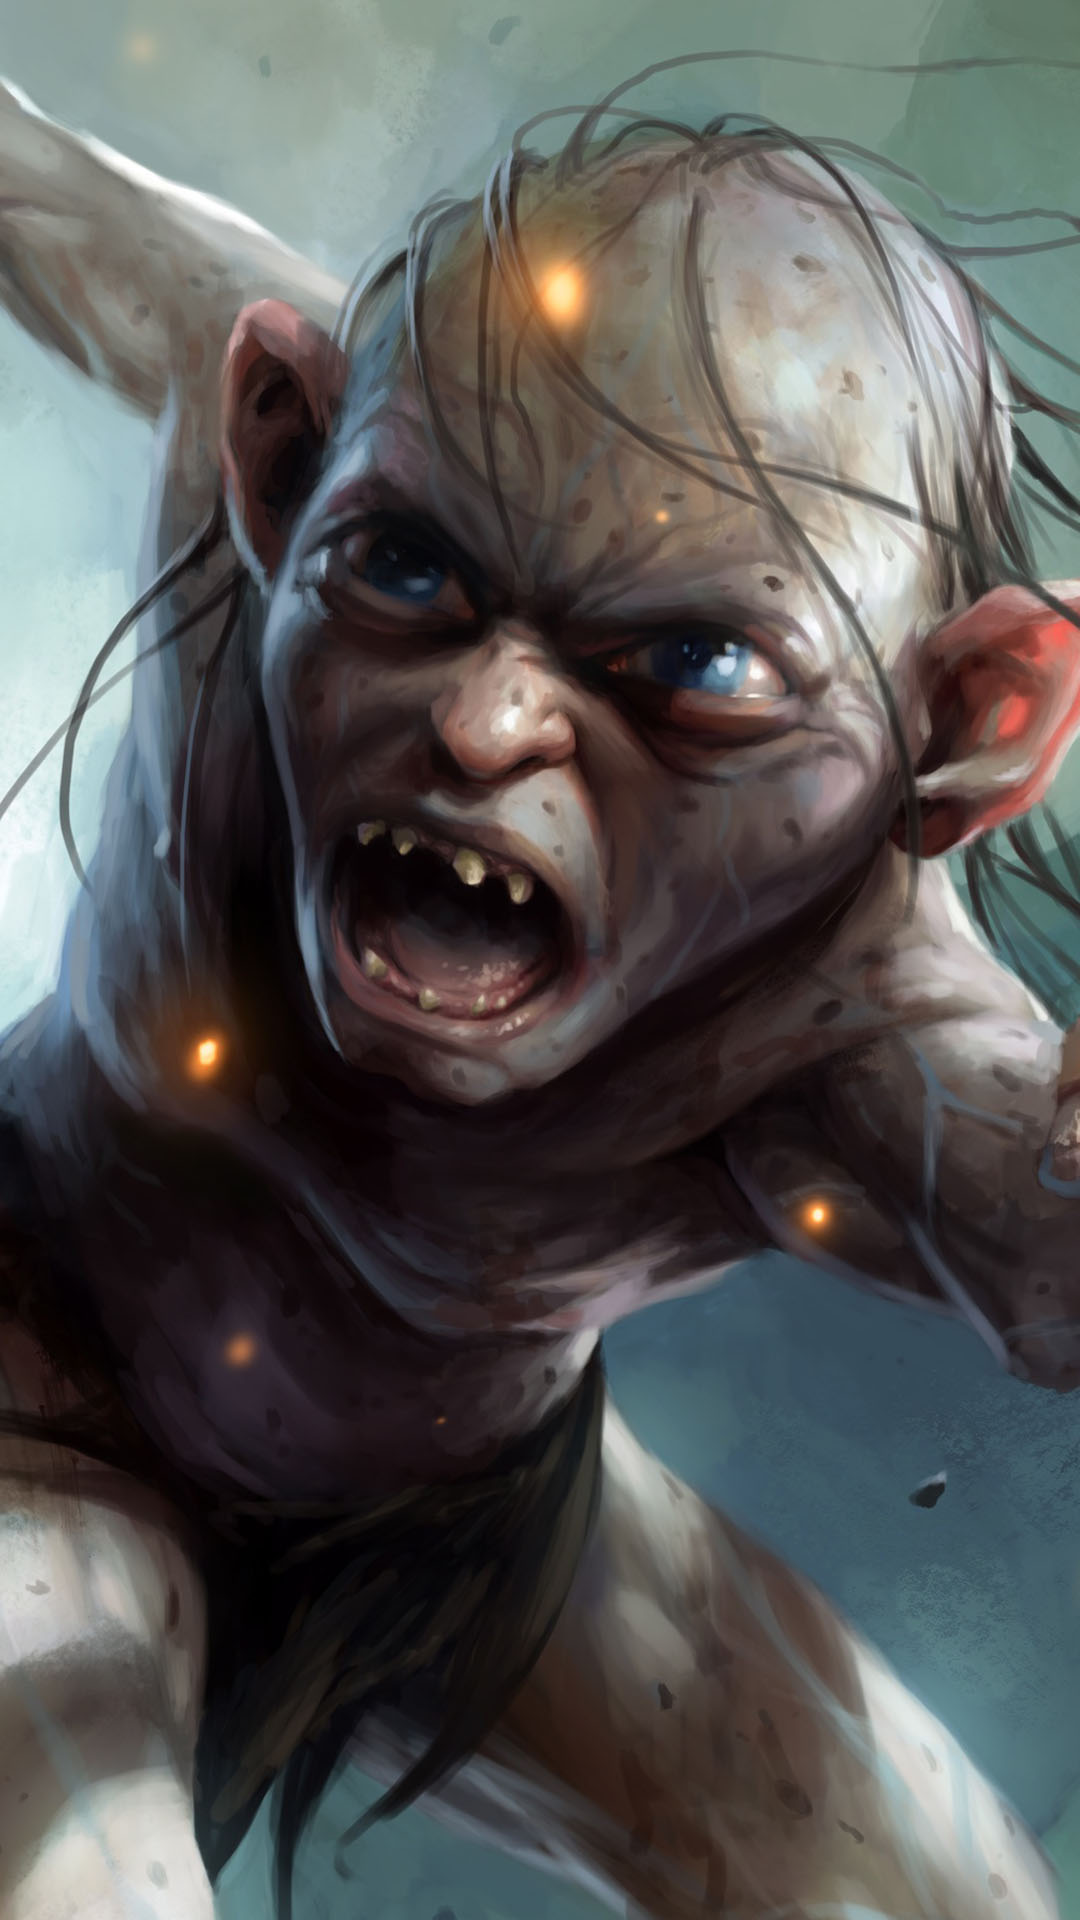 Minion Girl Wallpaper Gollum The Hobbit Iphone 6 6 Plus And Iphone 5 4 Wallpapers